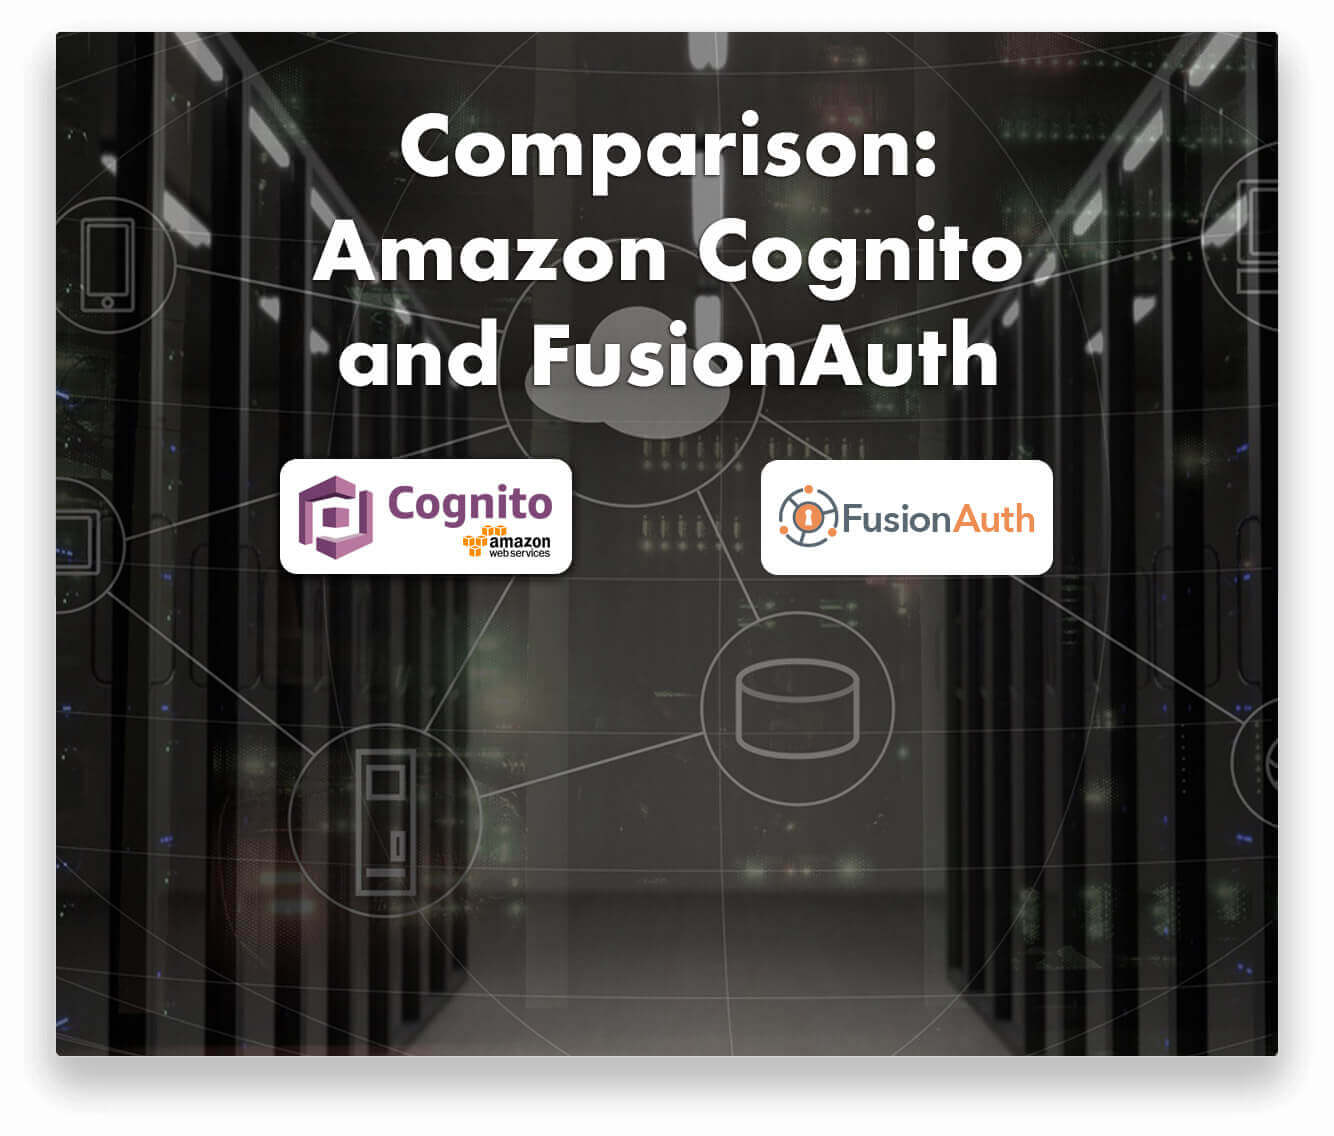 Compare FusionAuth and Amazon Cognito for your identity and access management solution.